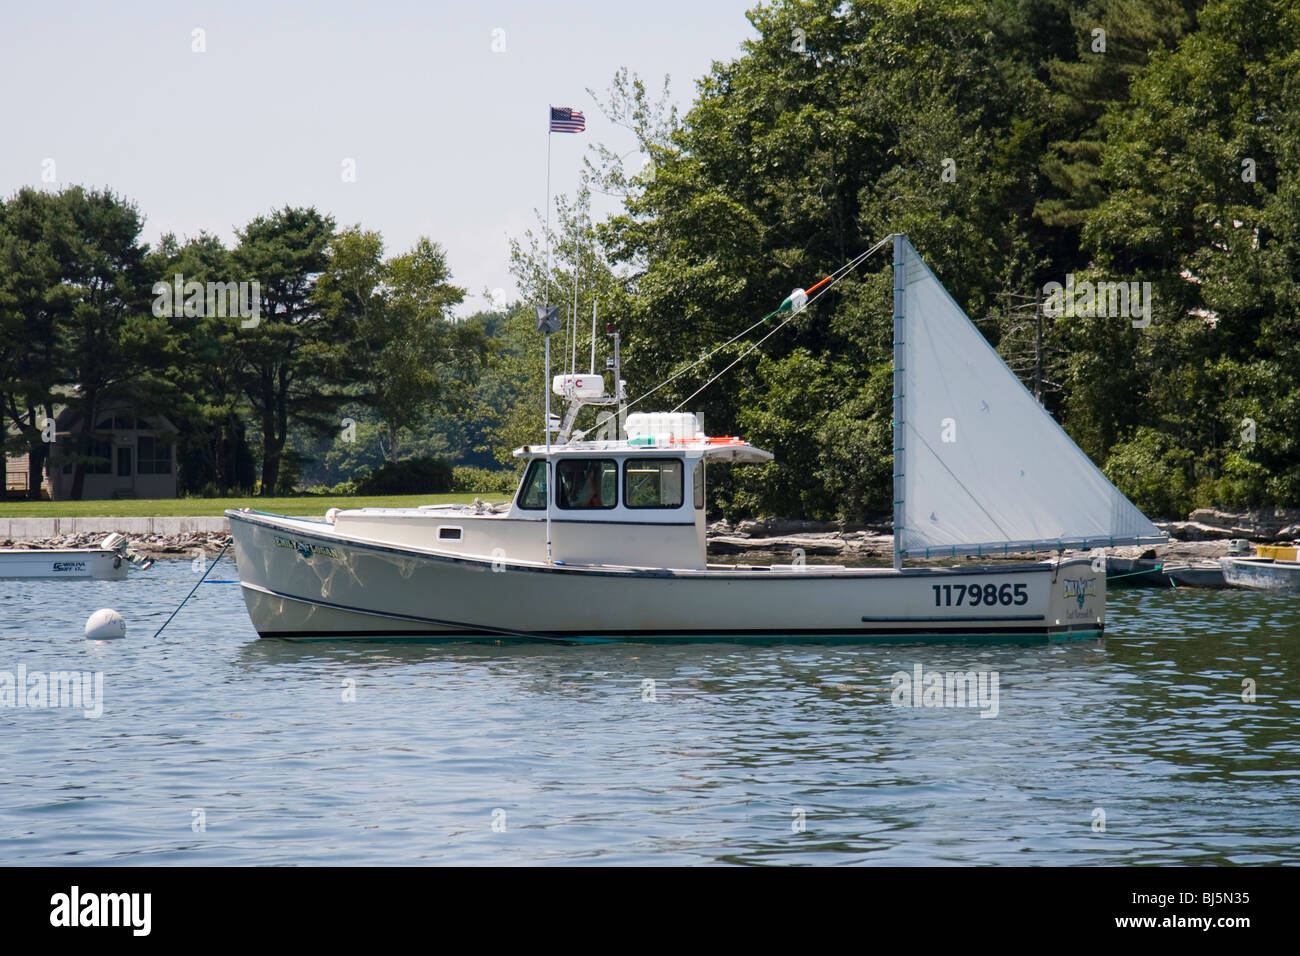 Boats yachts maine boats lobster boats picnic boats sailing - Lobster Boat With A Steadying Sail In Quahog Bay Stock Image